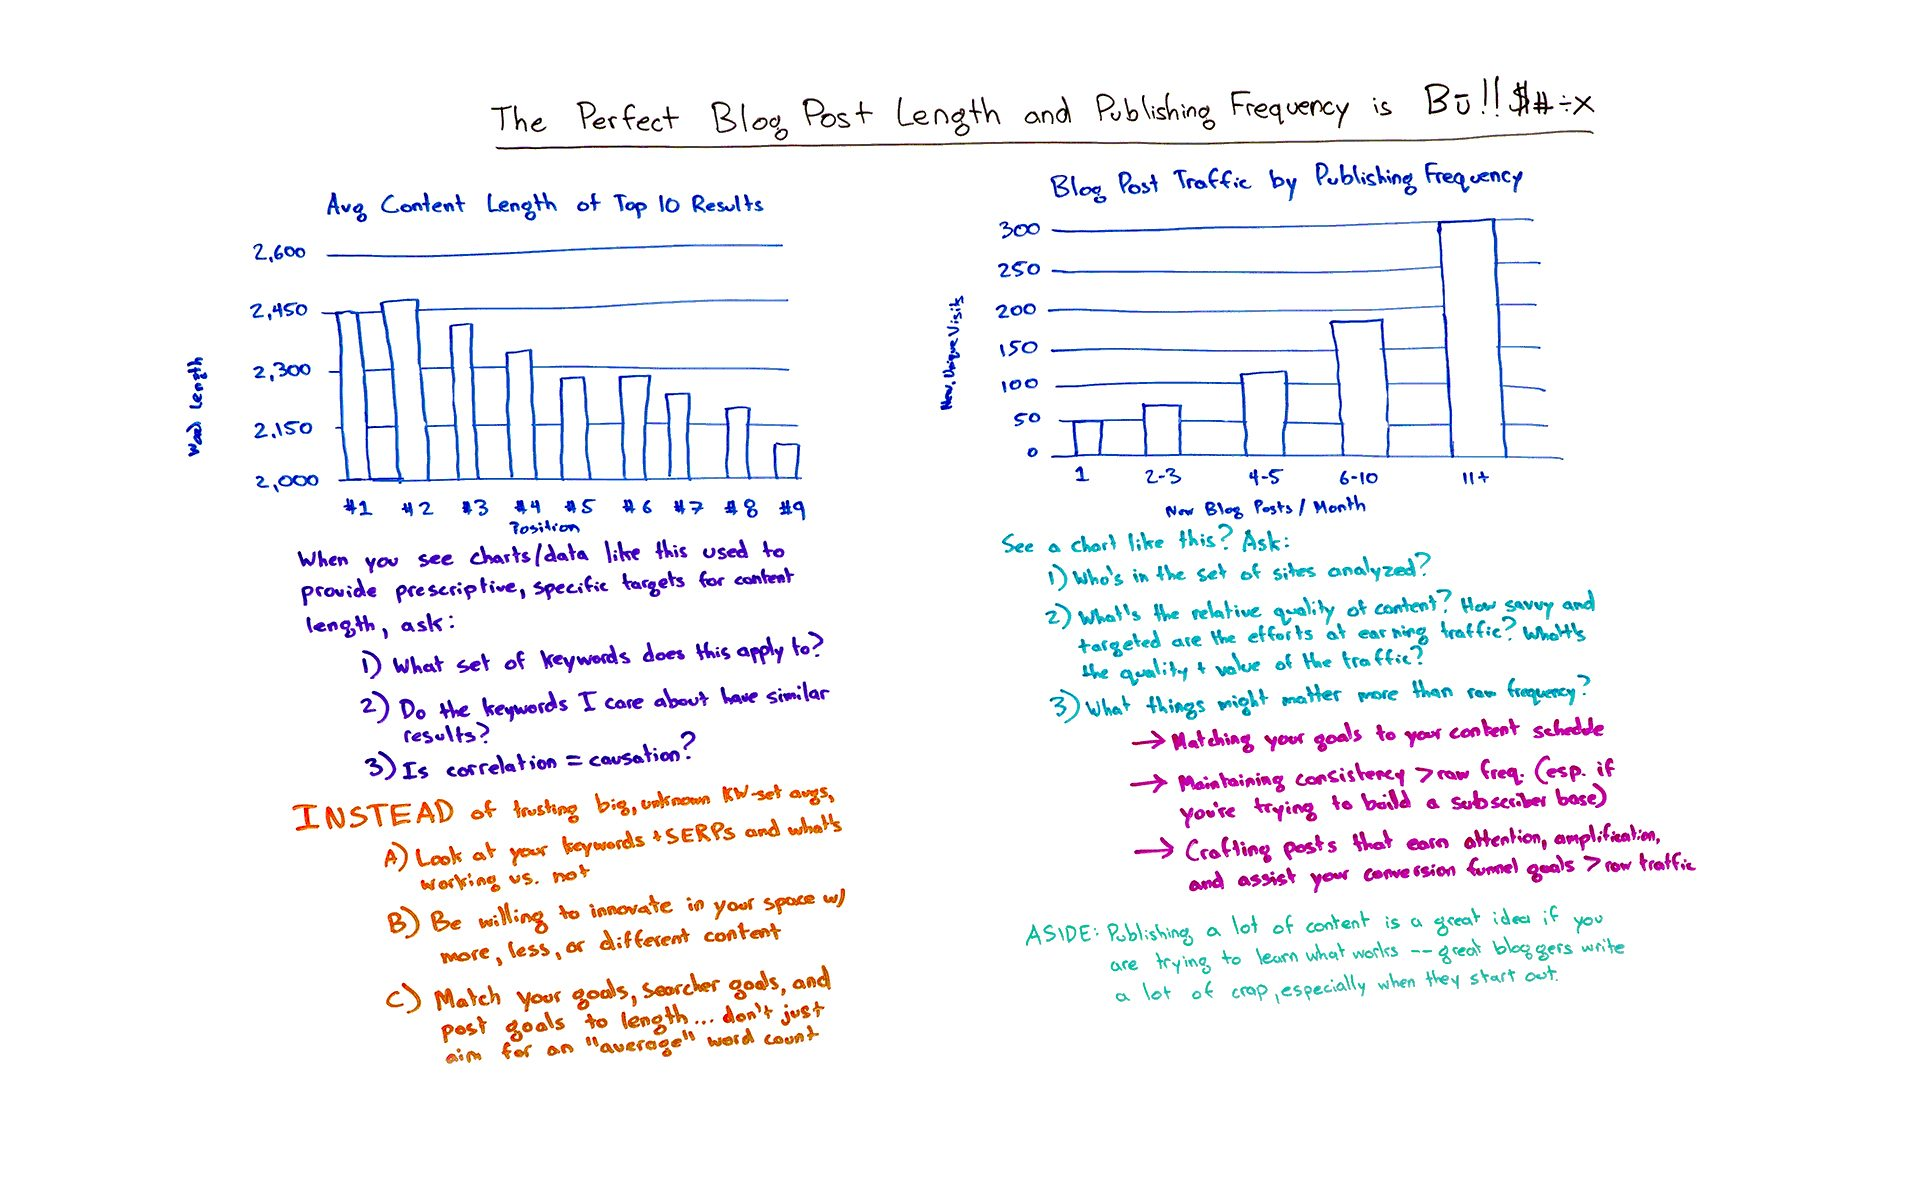 Ideal Blog Post Length Blog Post